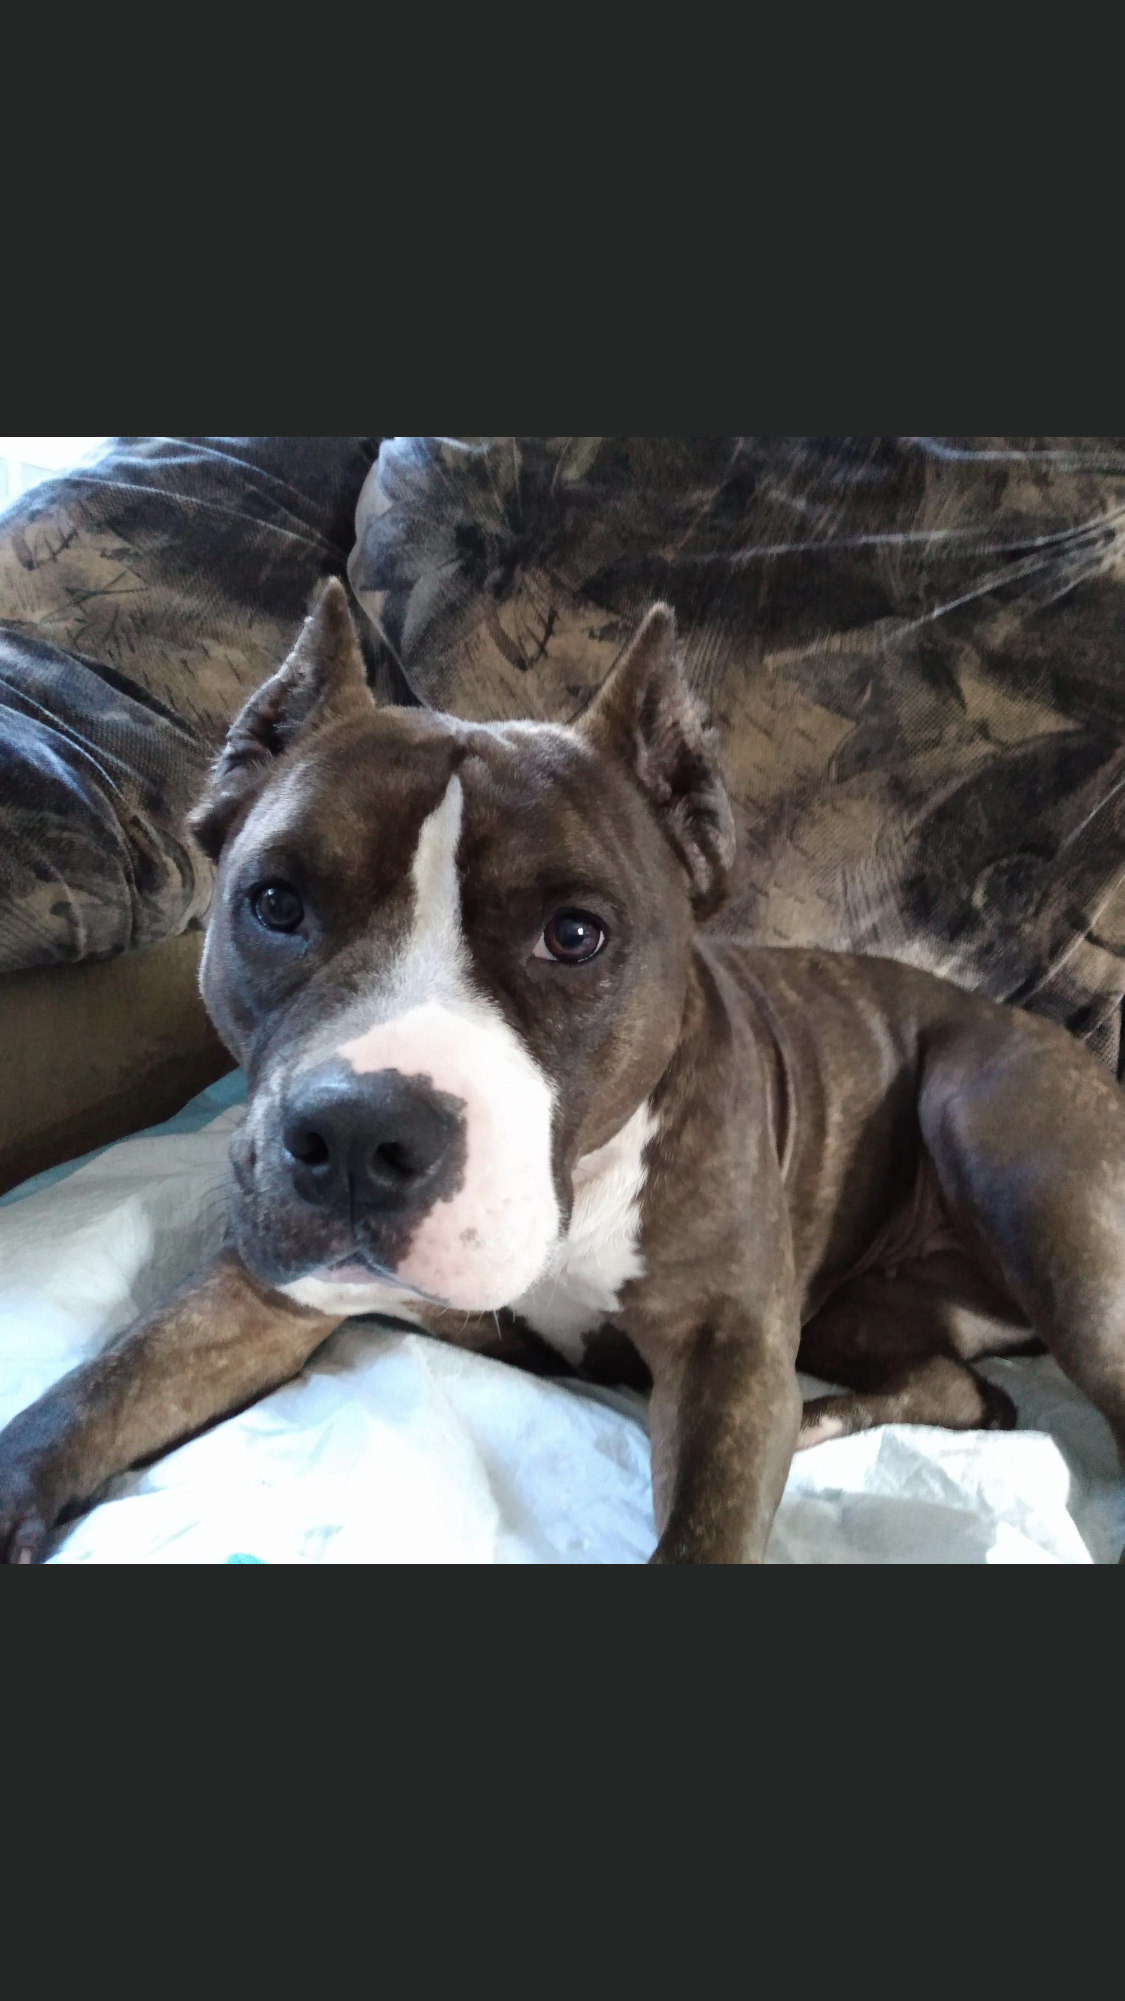 a picture of Lola a dog that needs a foster home.